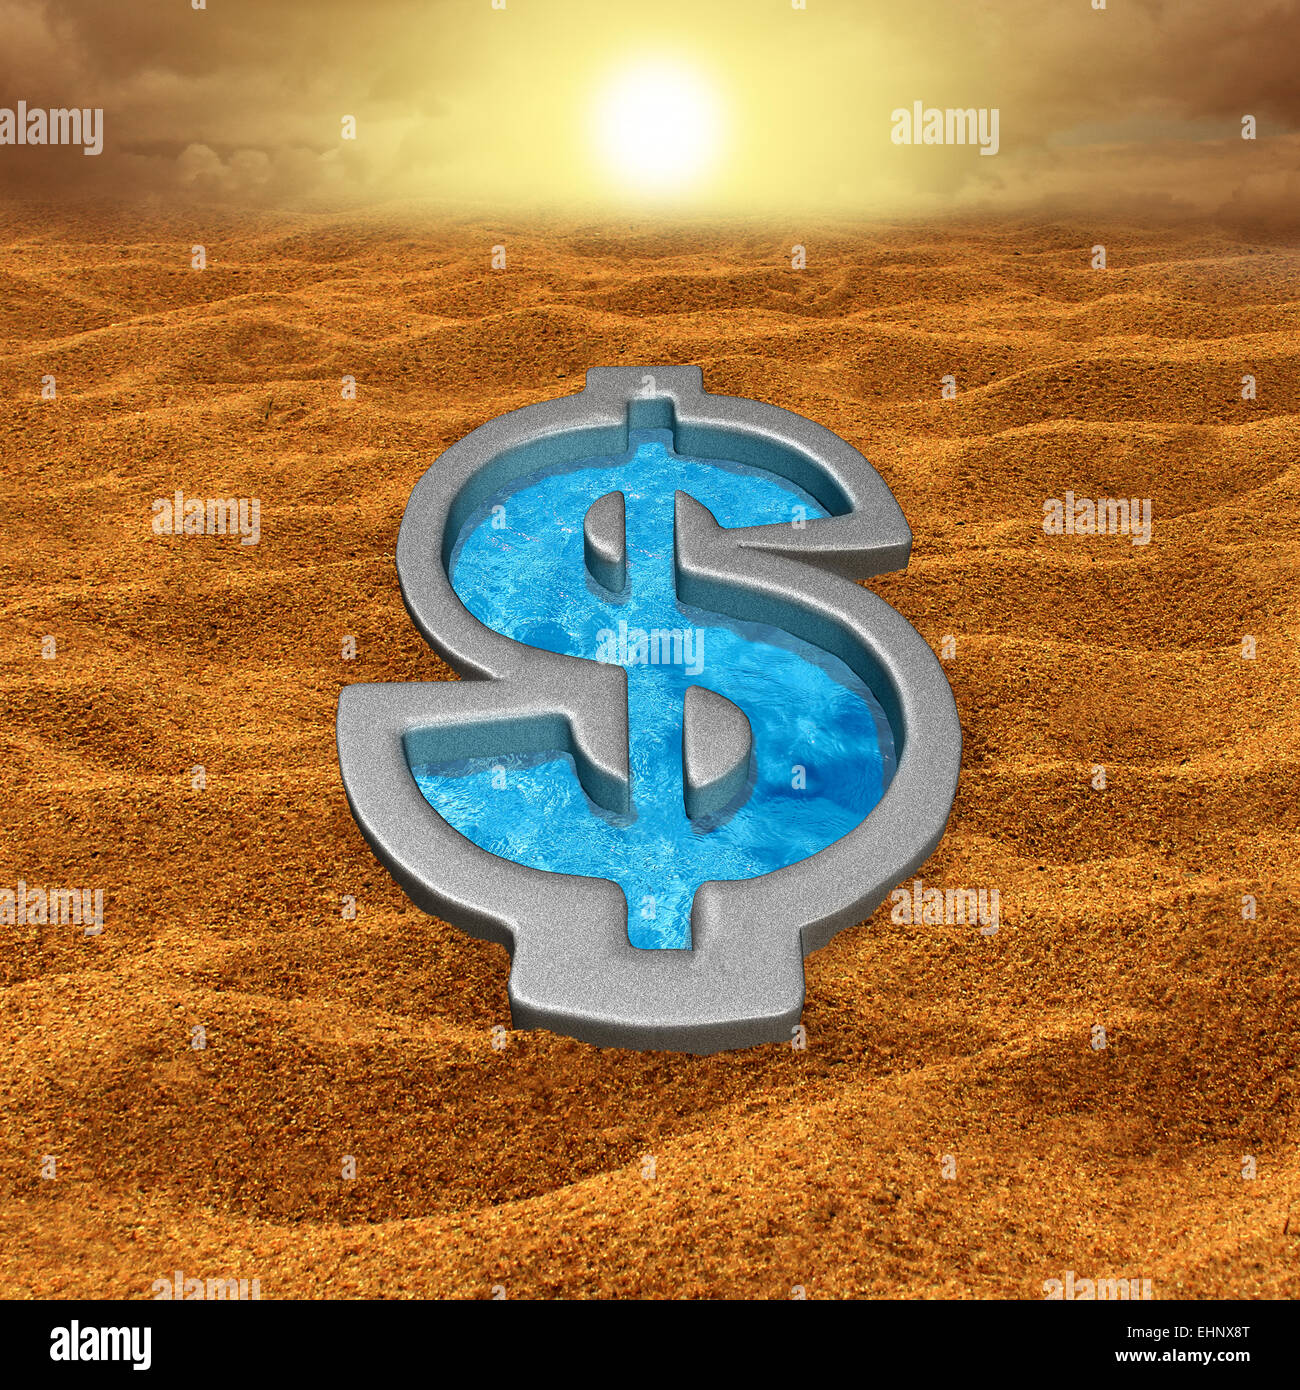 Financial relief and debt help concept as a dollar sign shaped swimming pool with fresh cool water in a hot dry Stock Photo